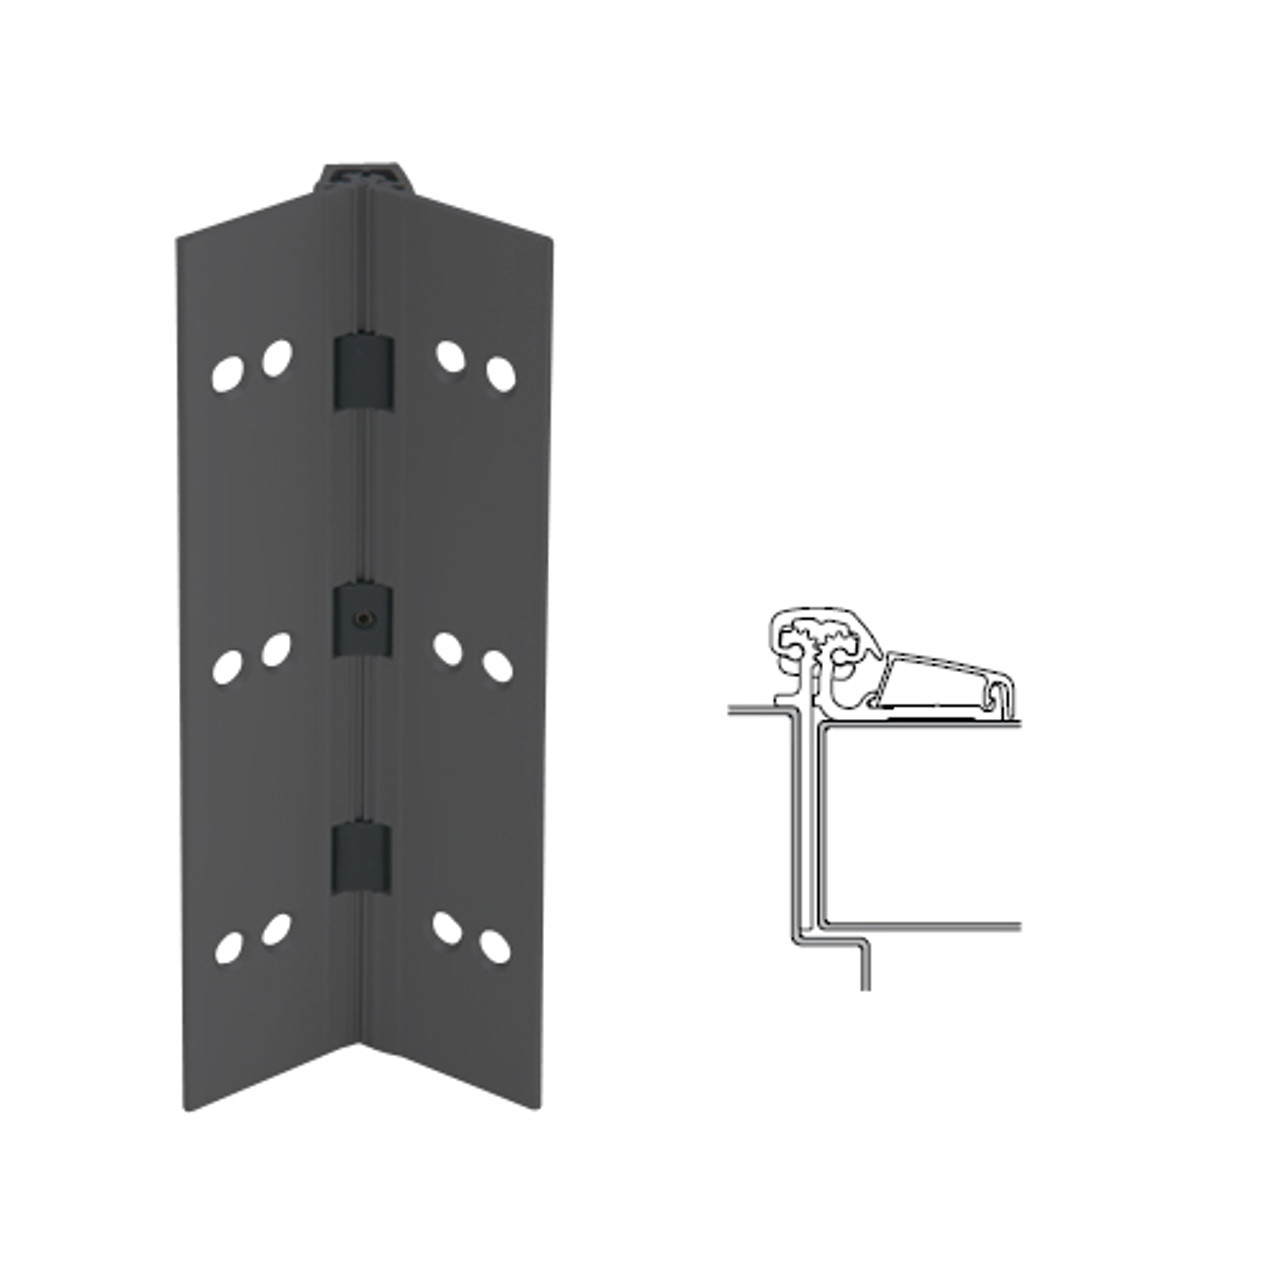 054XY-315AN-85-TF IVES Adjustable Half Surface Continuous Geared Hinges with Thread Forming Screws in Anodized Black